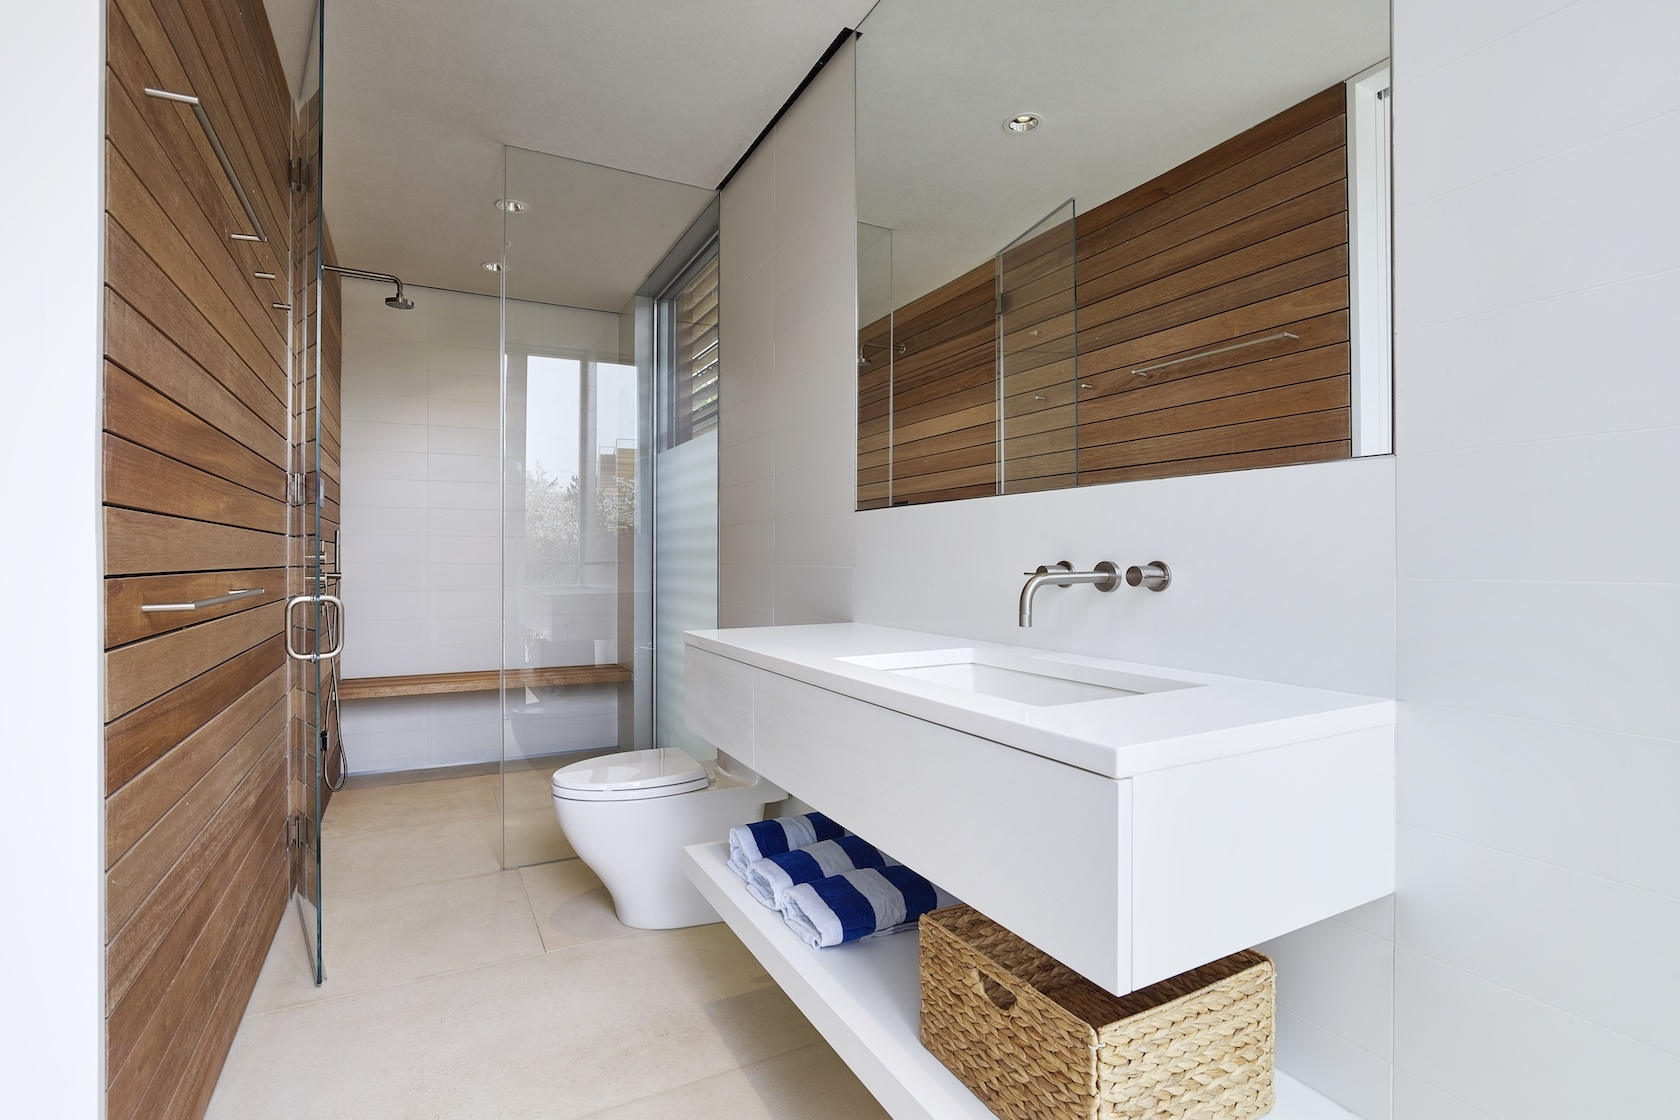 Amagansett, NY modern house bathroom